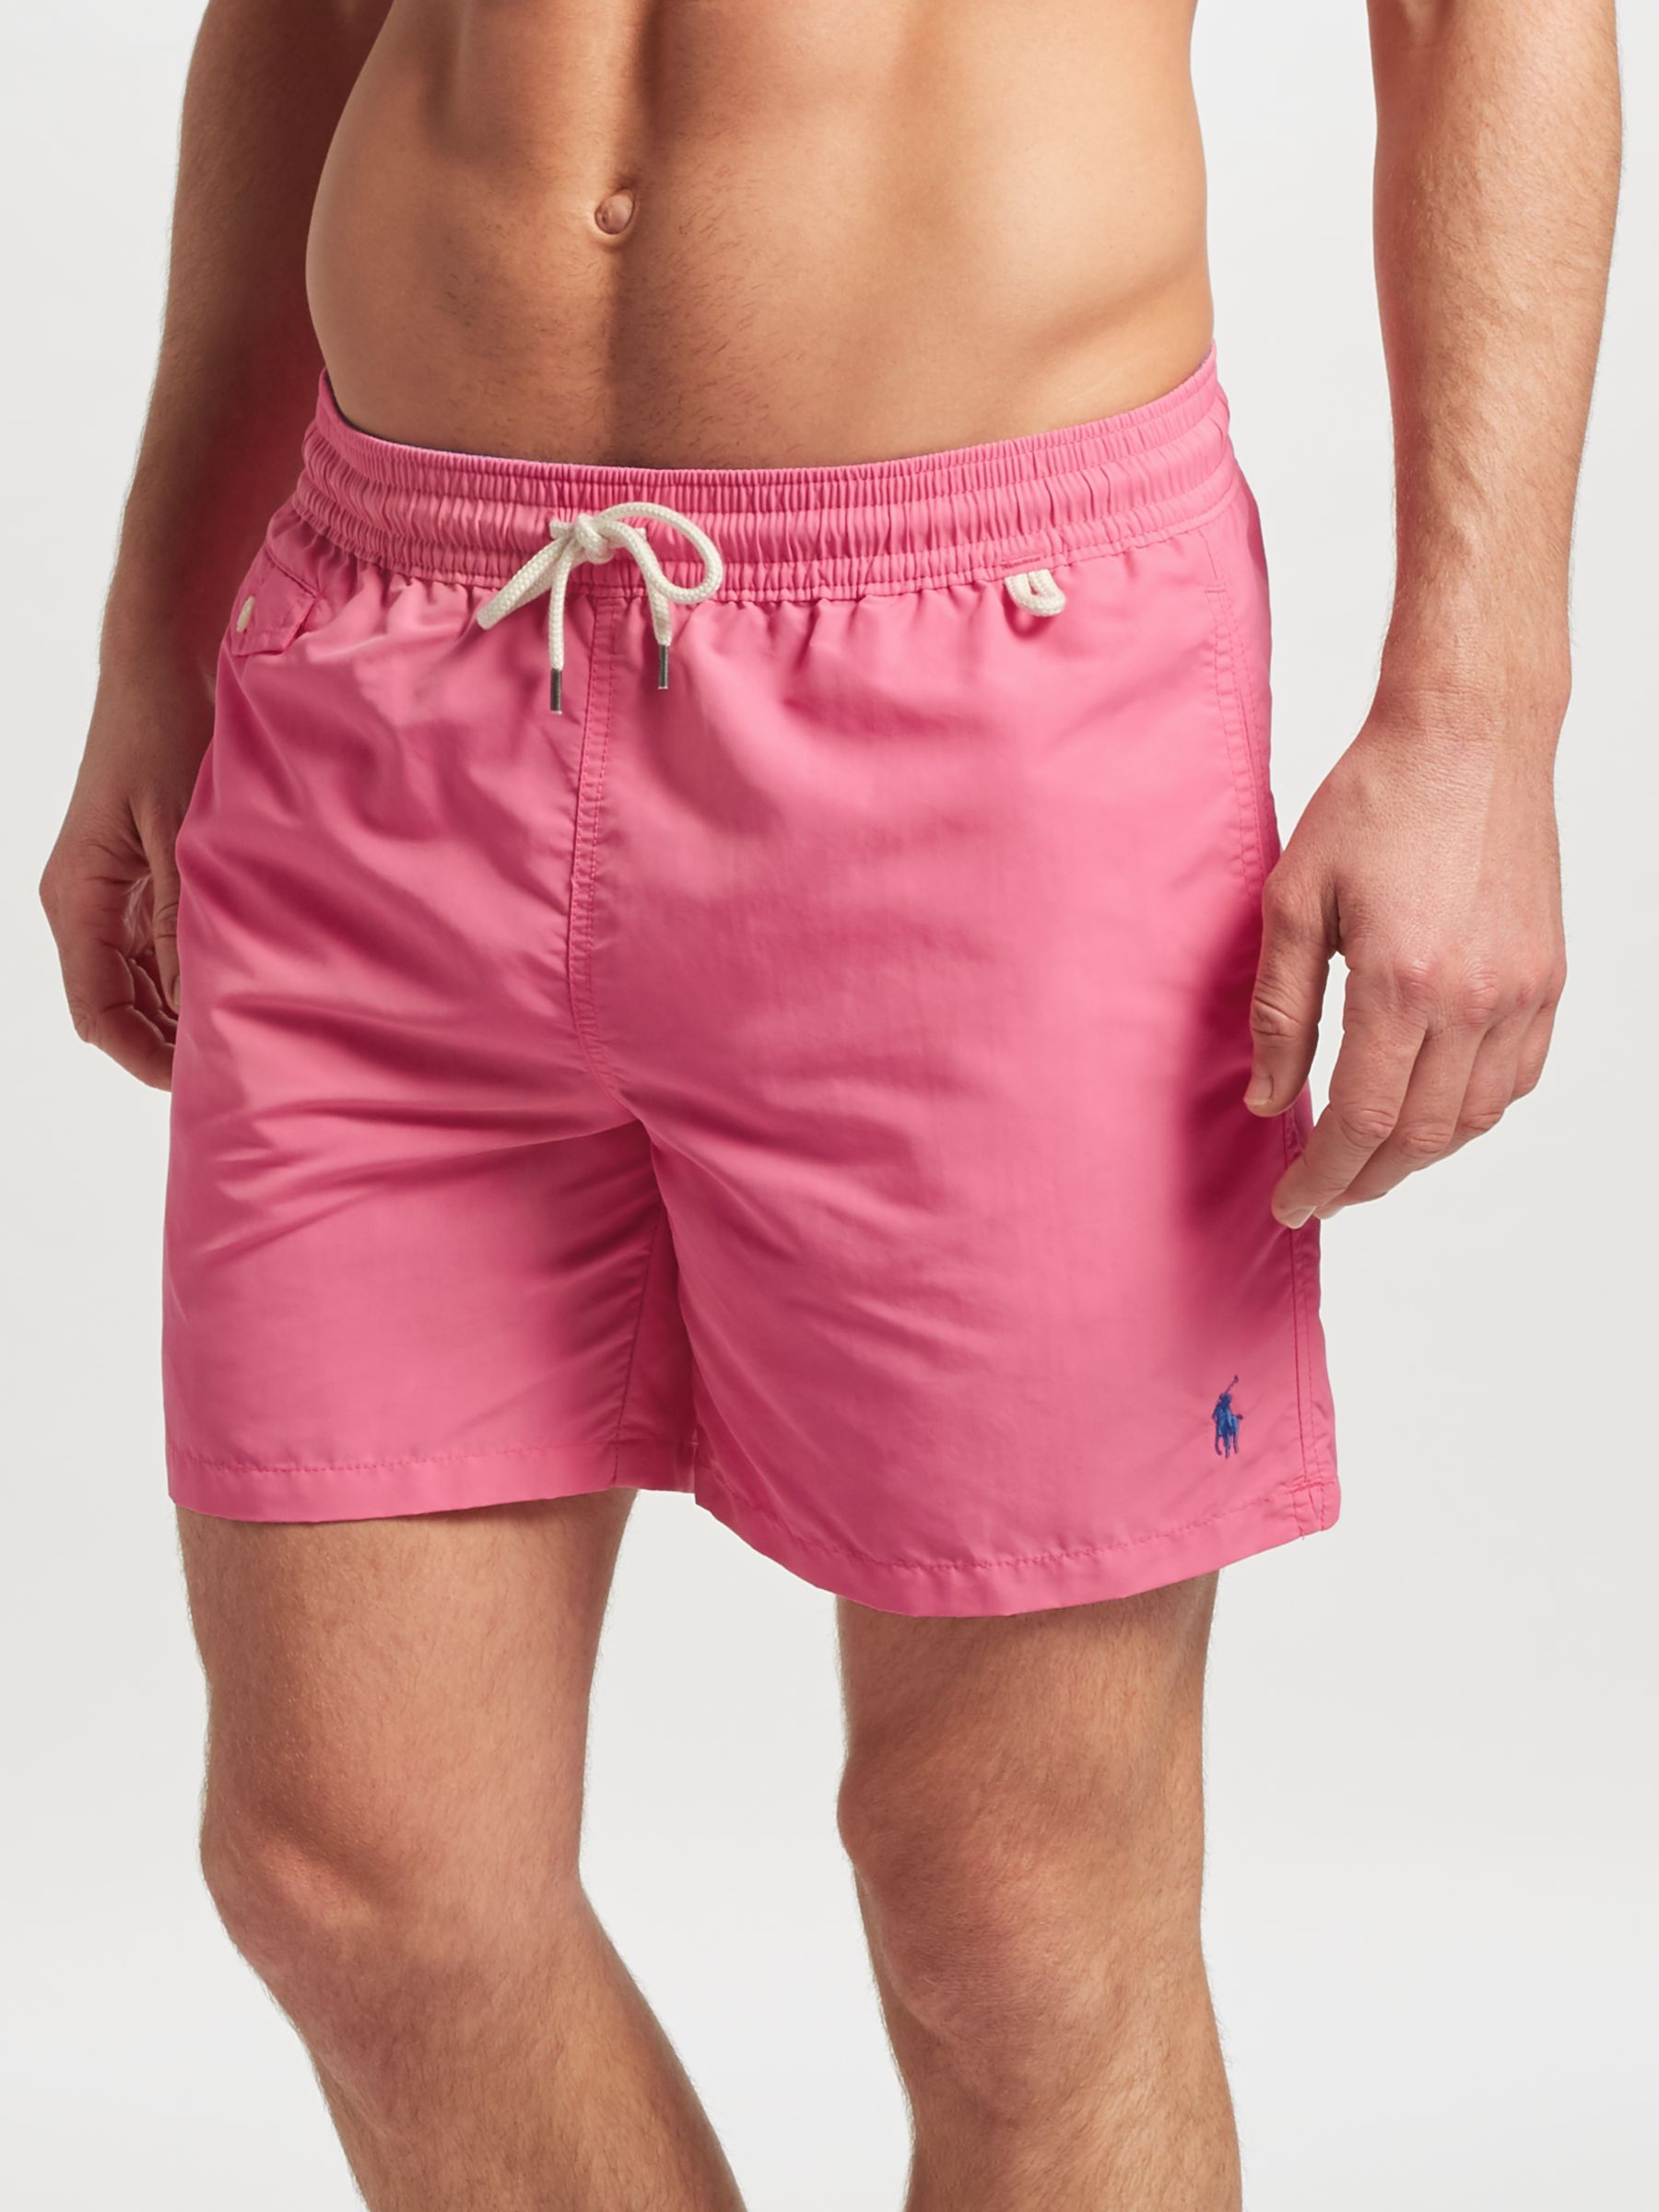 09d7628b29 Polo Ralph Lauren Traveller Swim Shorts at John Lewis & Partners